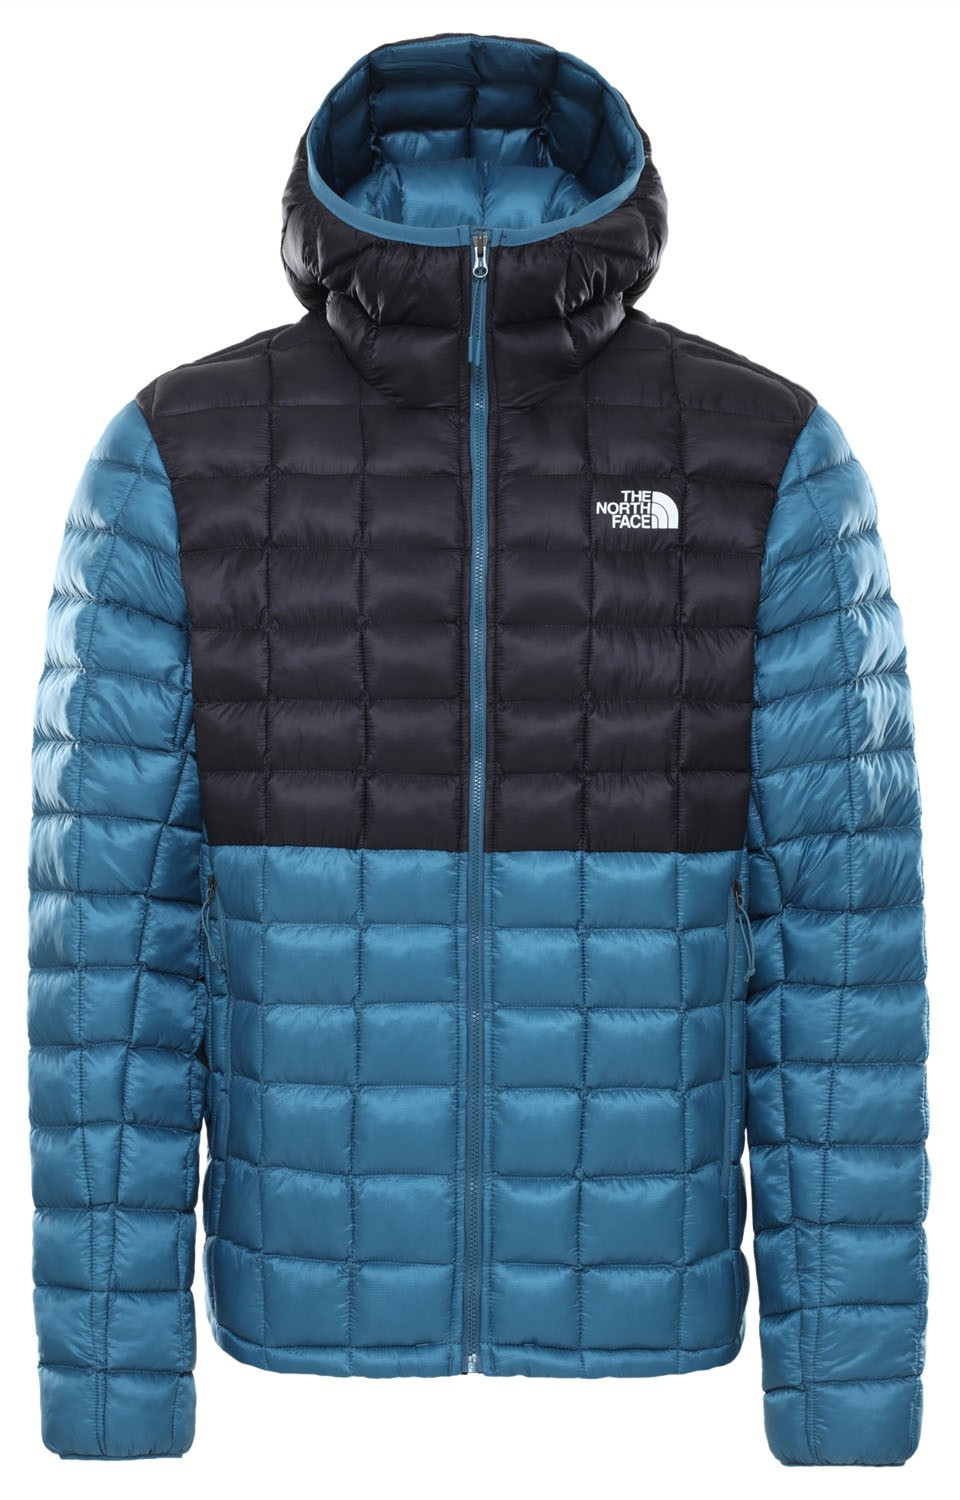 The North Face Thermoball Super Hoodie, chaqueta ligera rellena de fibra tipo pluma artificial